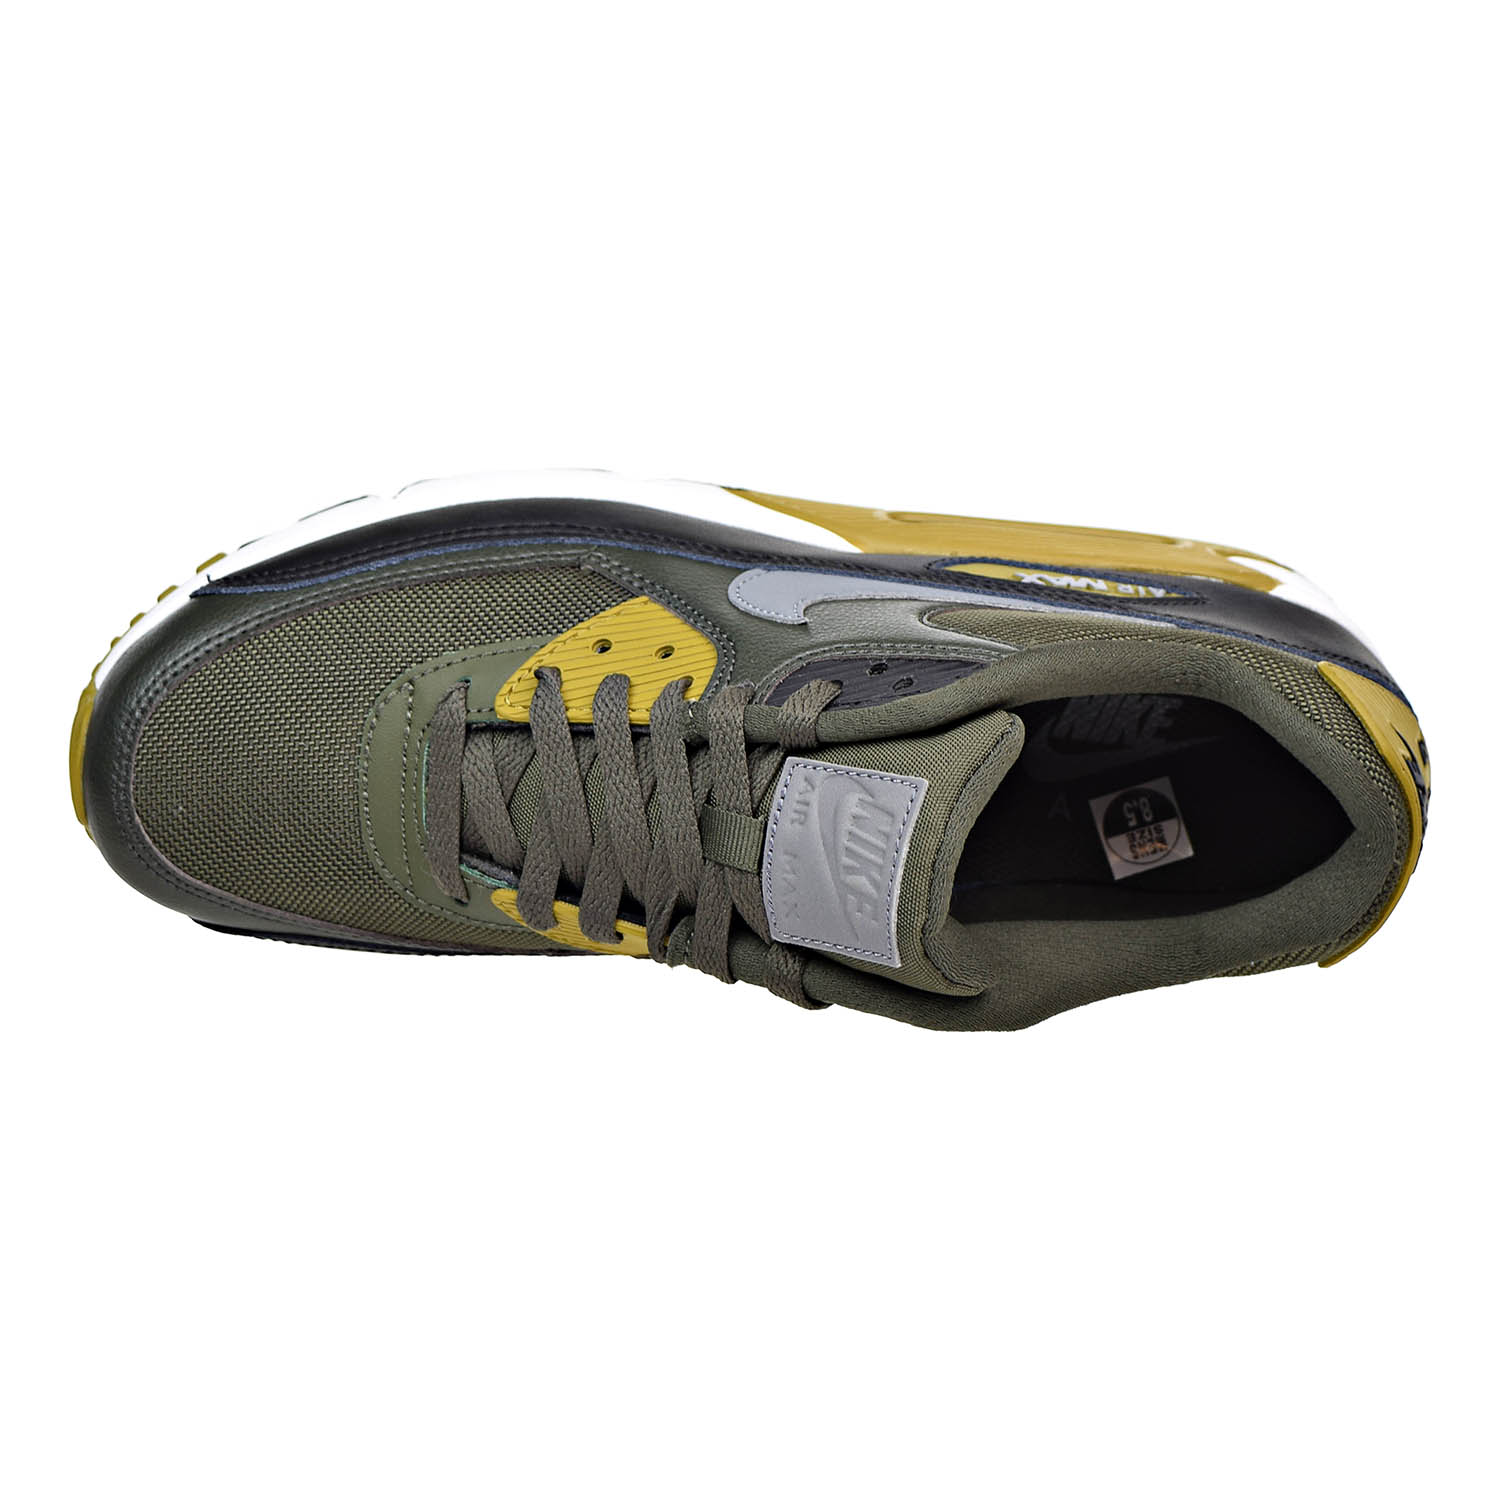 cheap for discount dc732 66ee6 Nike - Nike Air Max 90 Essential Mens Shoes Cargo KhakiCool GreyBlack  537384-307 - Walmart.com